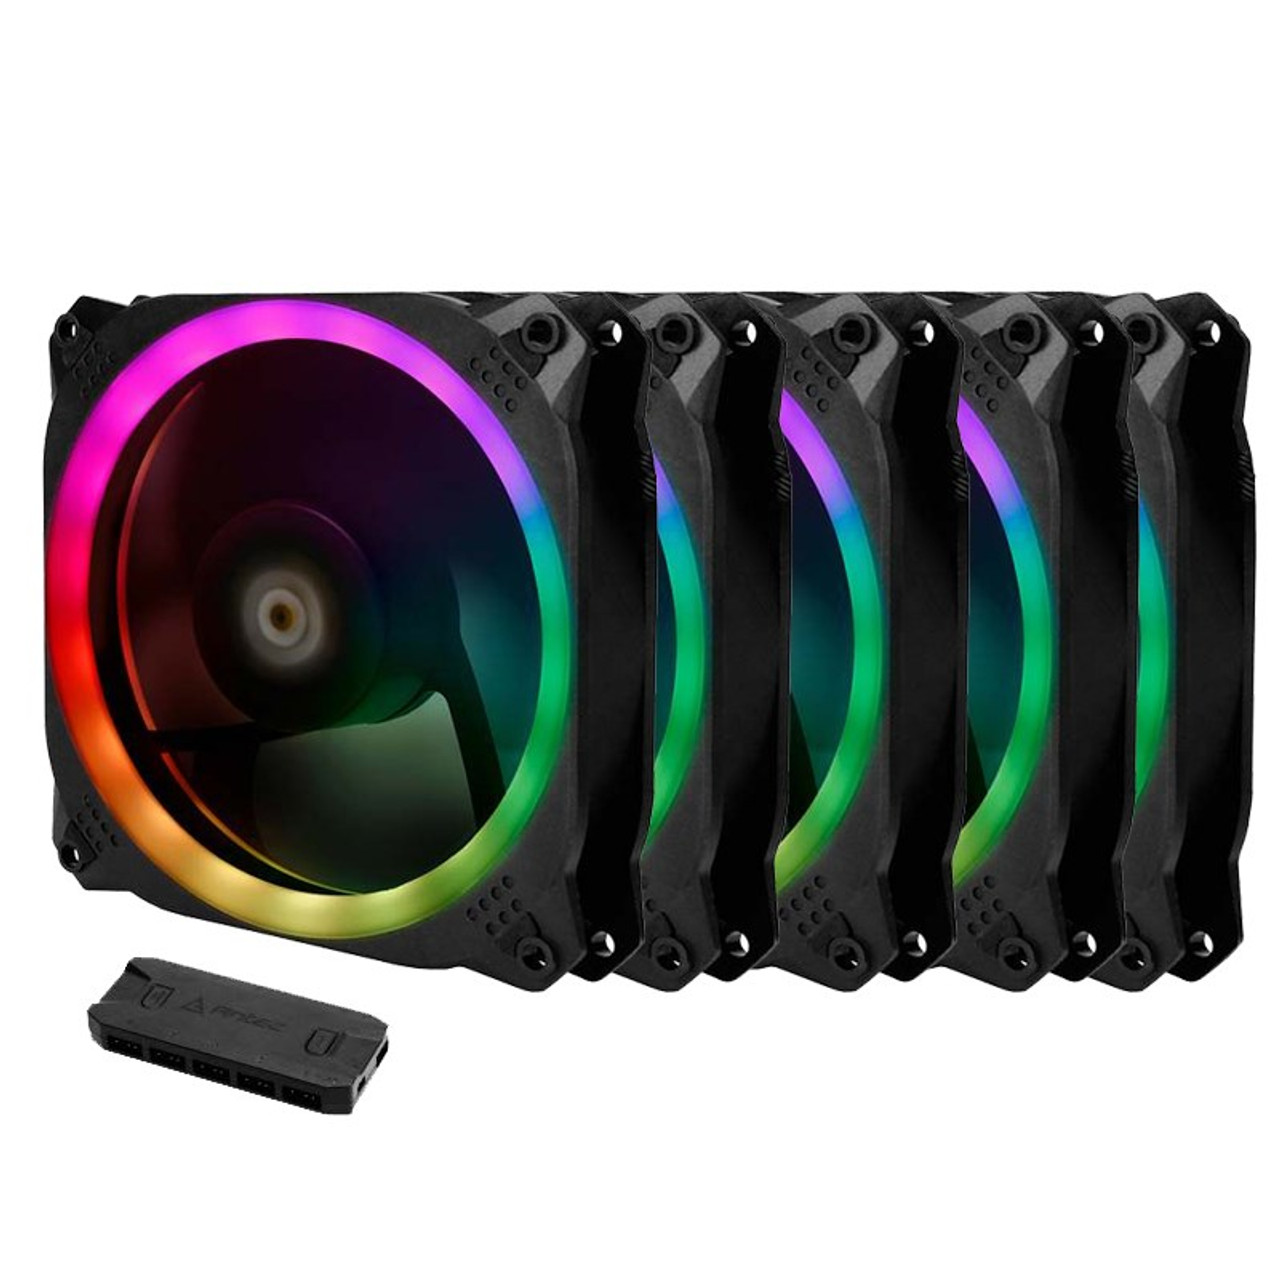 Image for Antec Prizm 120 ARGB 5+C PWM Case Fan - 5 Pack with Controller CX Computer Superstore